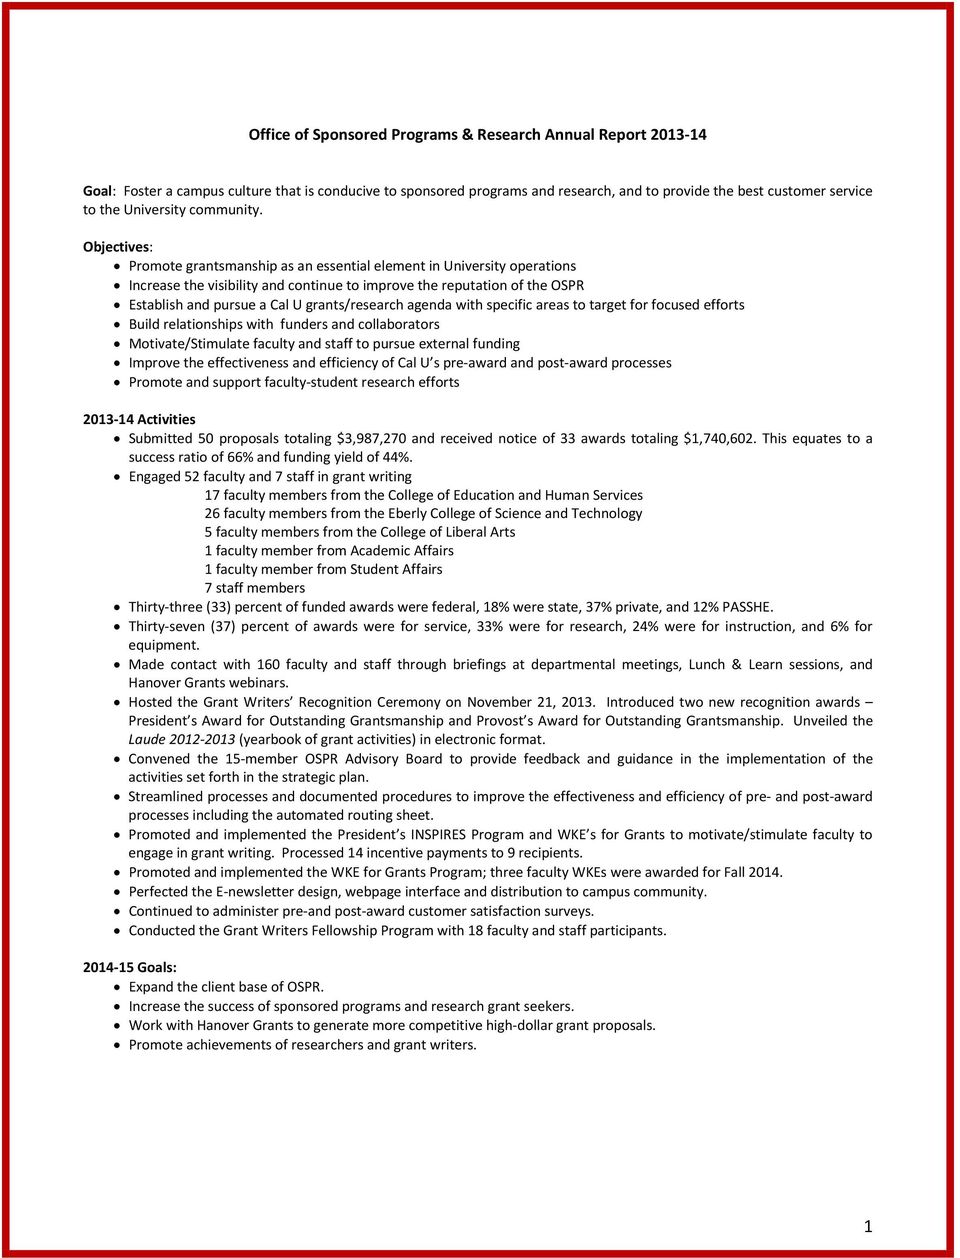 Objectives: Promote grantsmanship as an essential element in University operations Increase the visibility and continue to improve the reputation of the OSPR Establish and pursue a Cal U